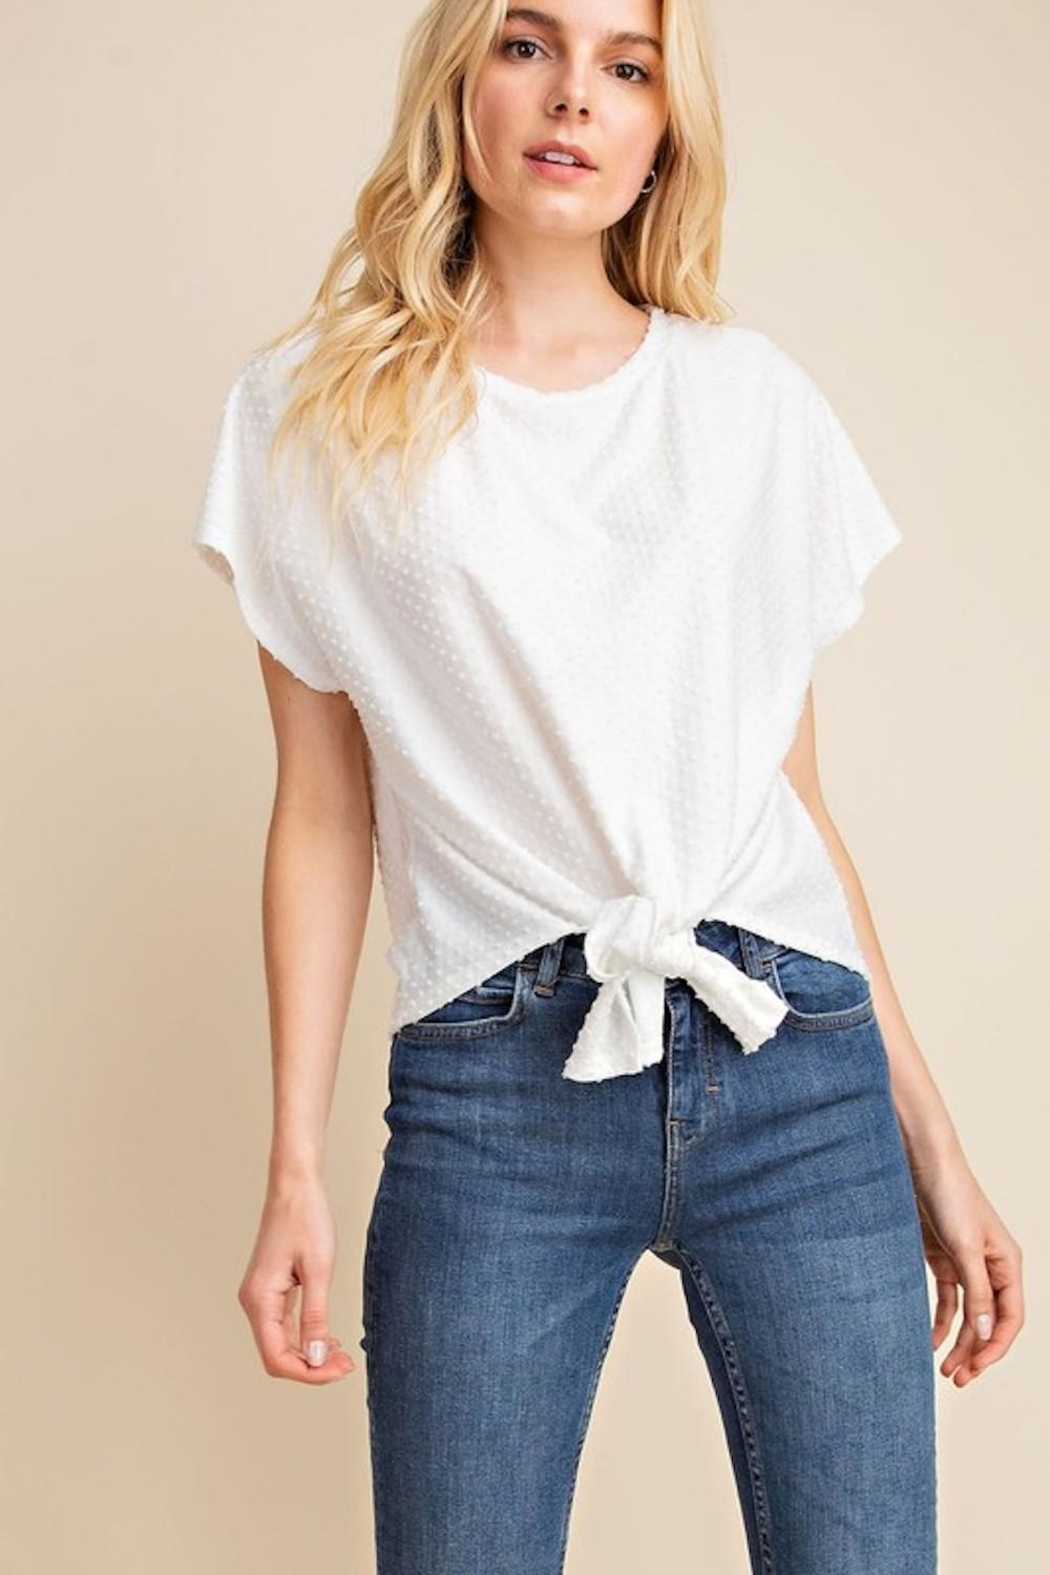 Gilli White Dots-Knot Top - Front Full Image